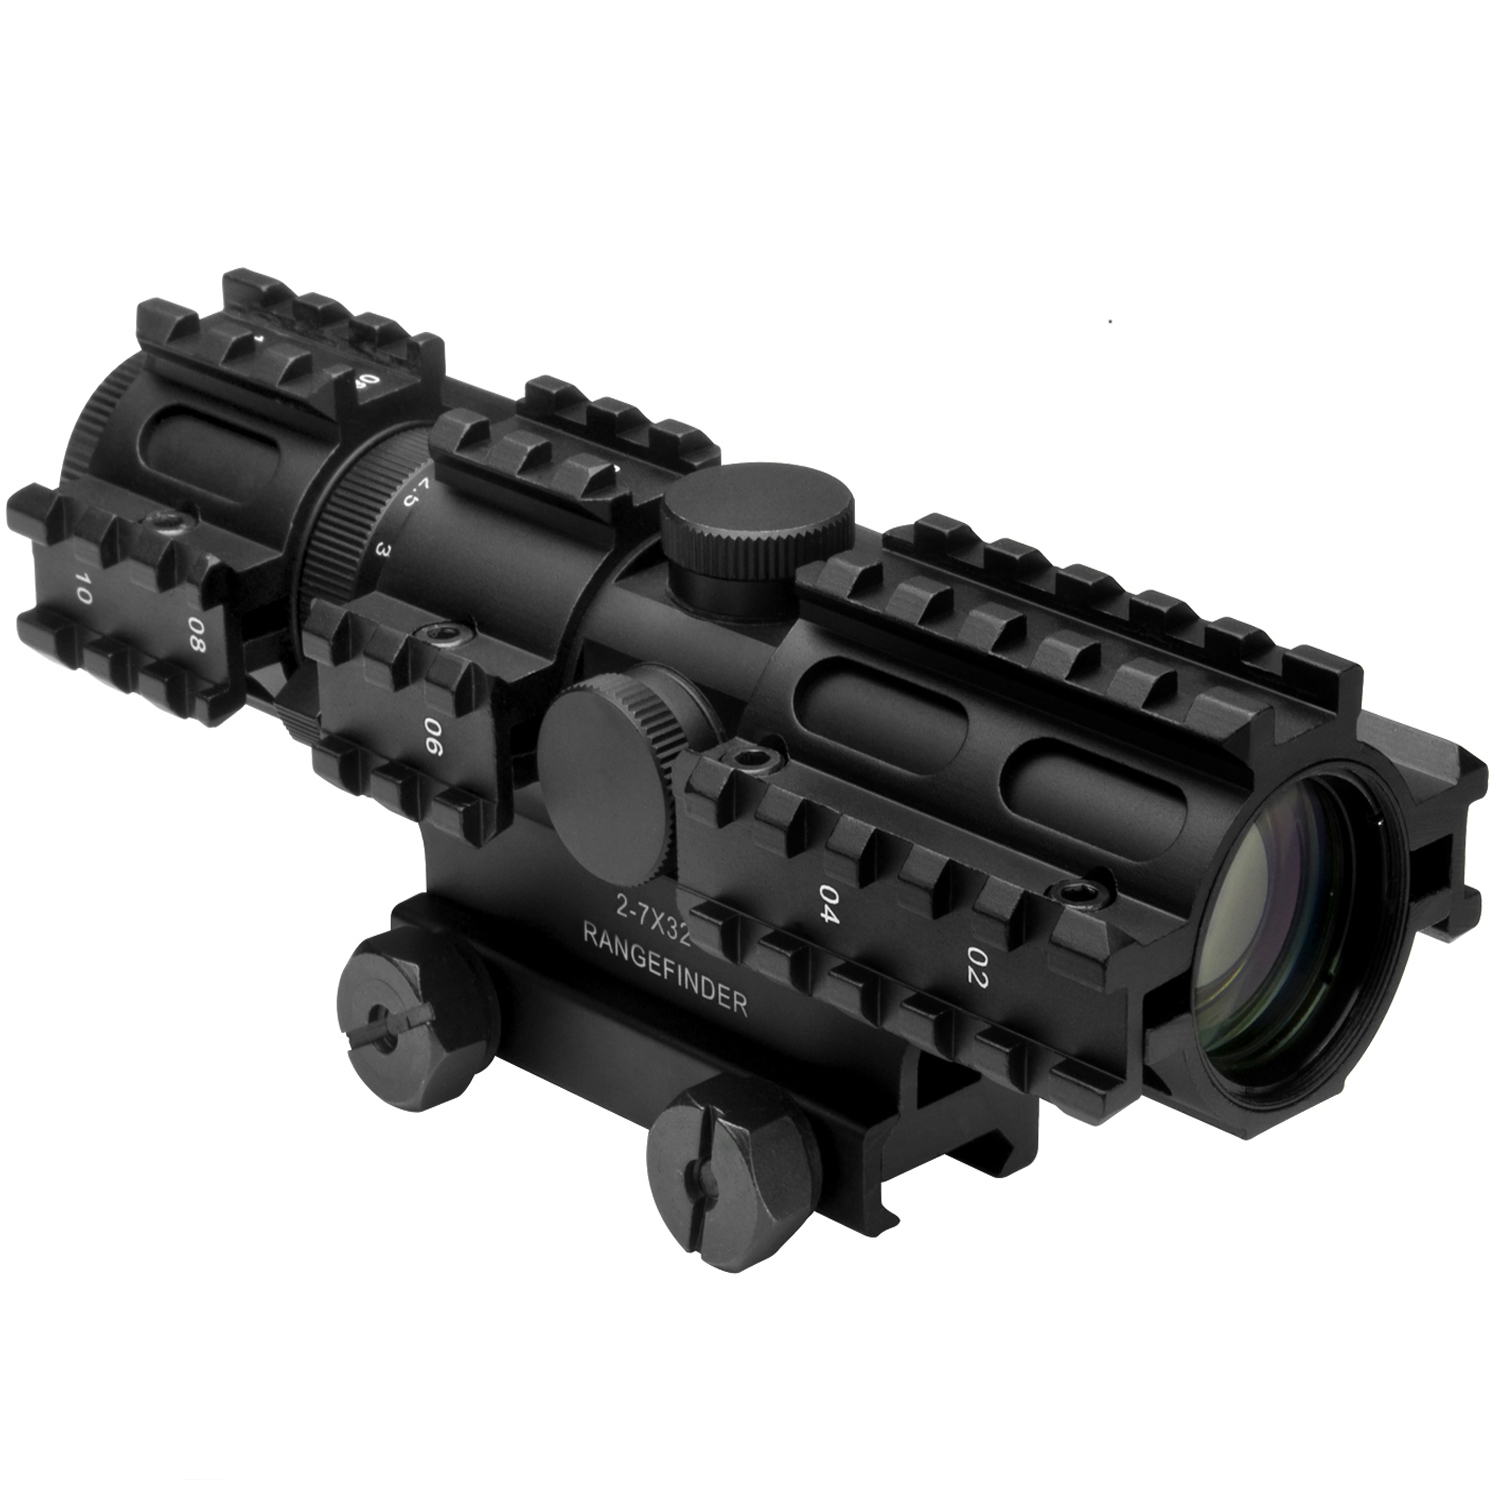 Ncstar Tri-Rail Series 2-7X32 Compact Rifle Scope